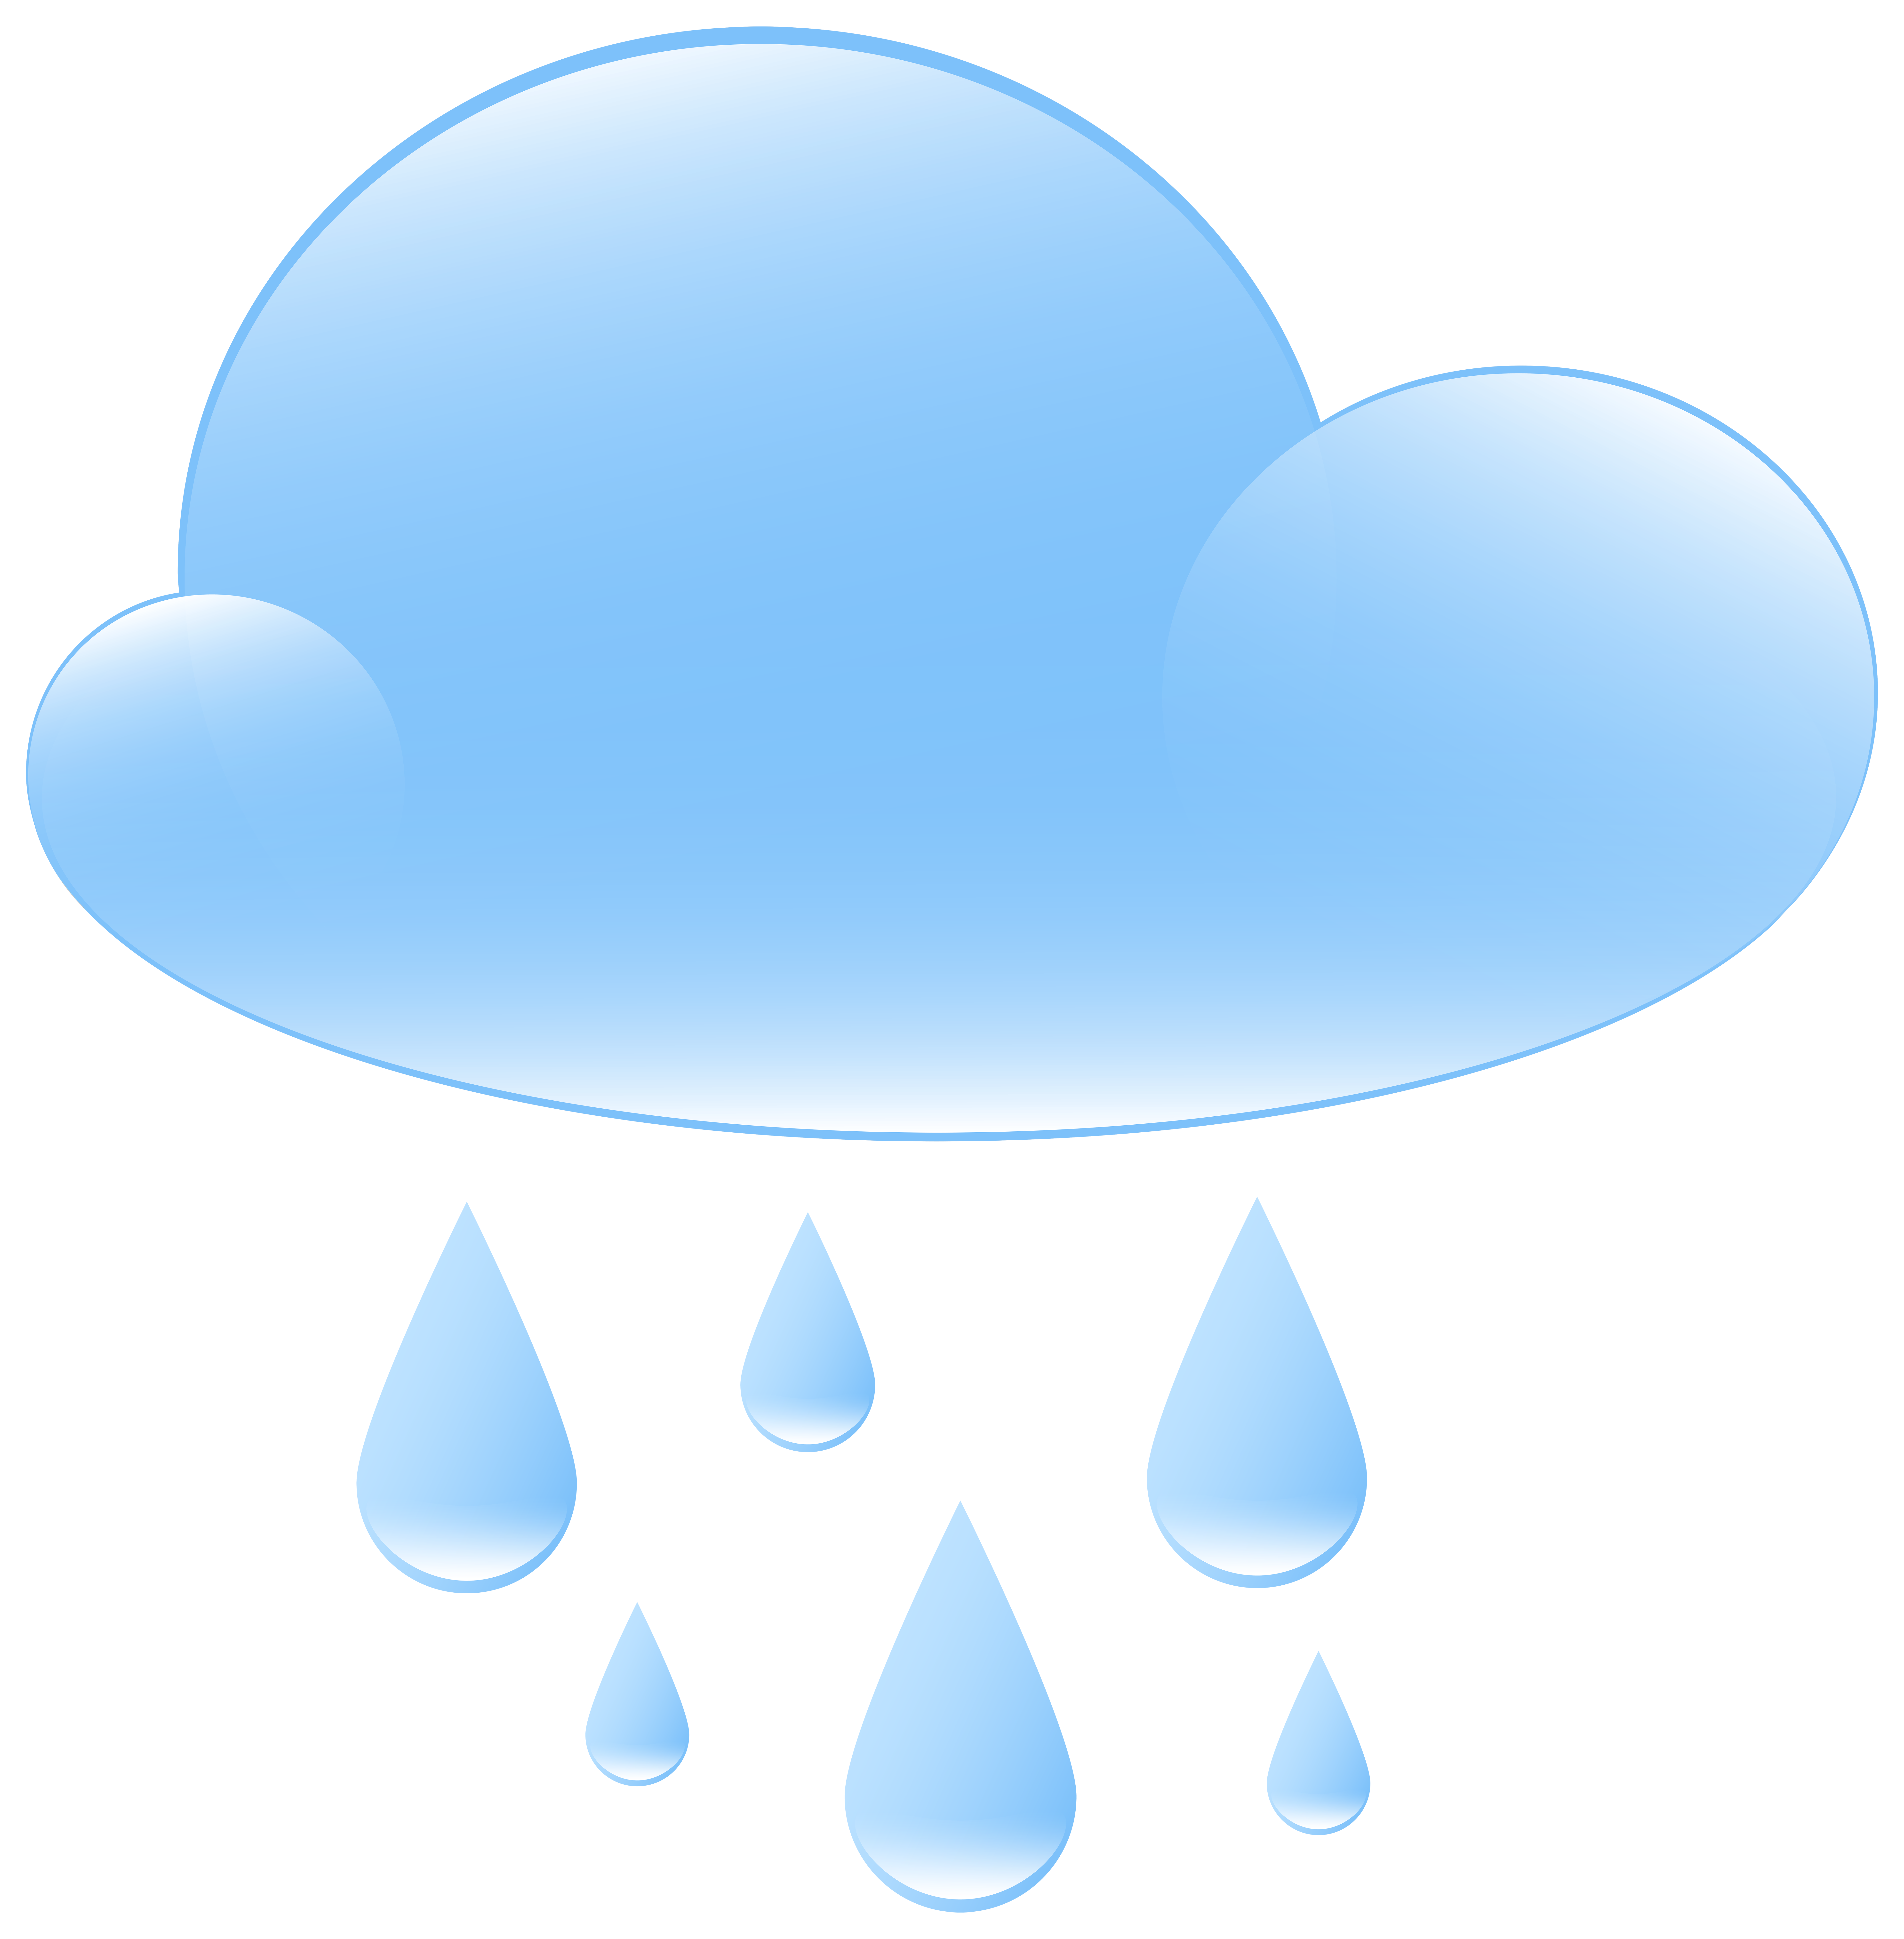 7854x8000 Rainy Weather Icon Png Clip Art